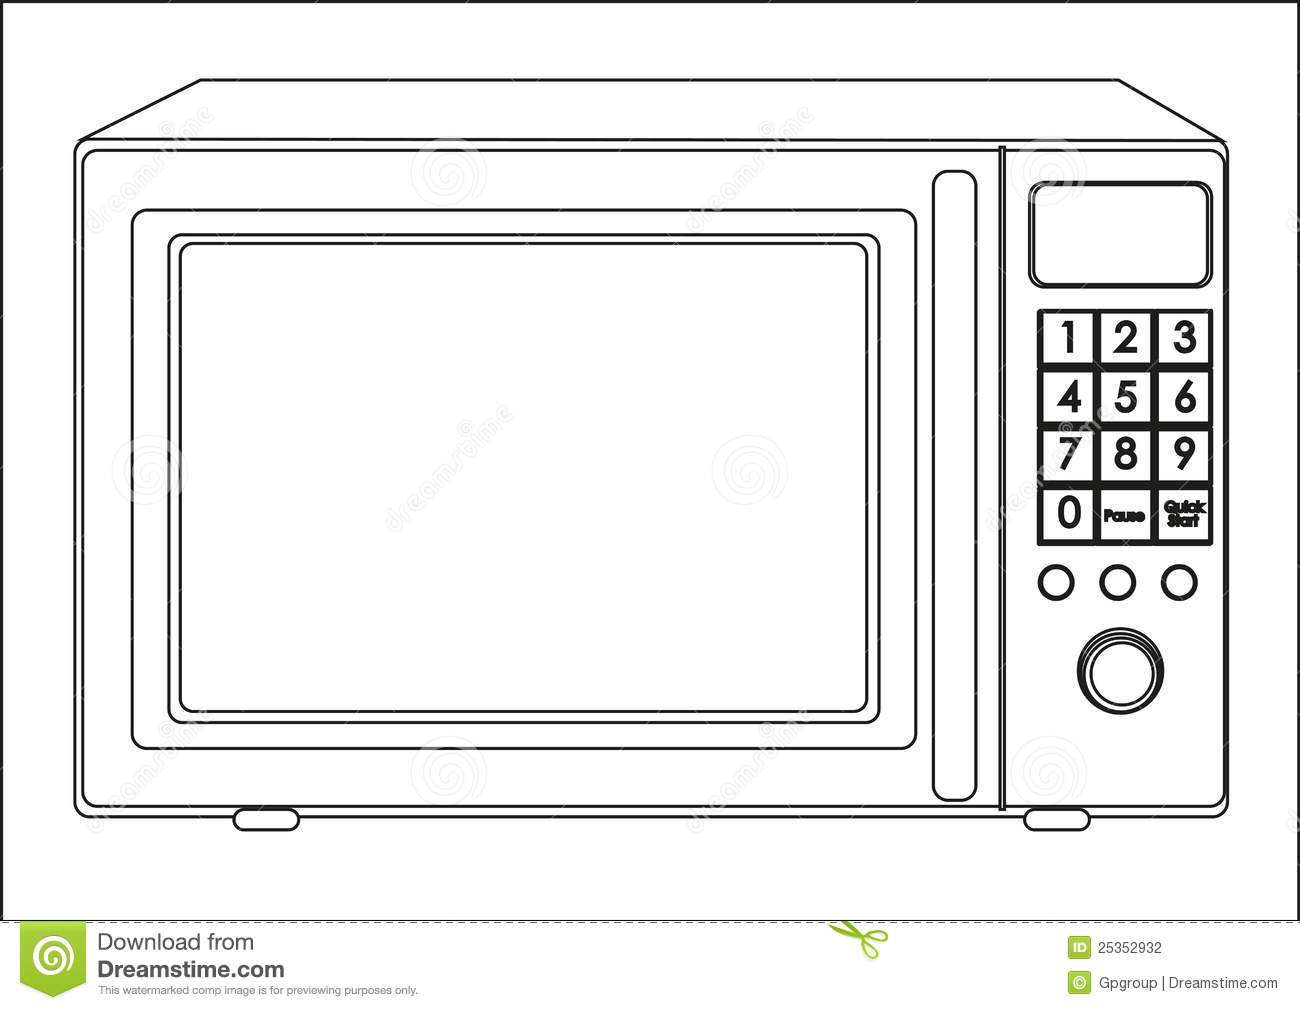 Microwave Clip Art Illustration Of A Microwave